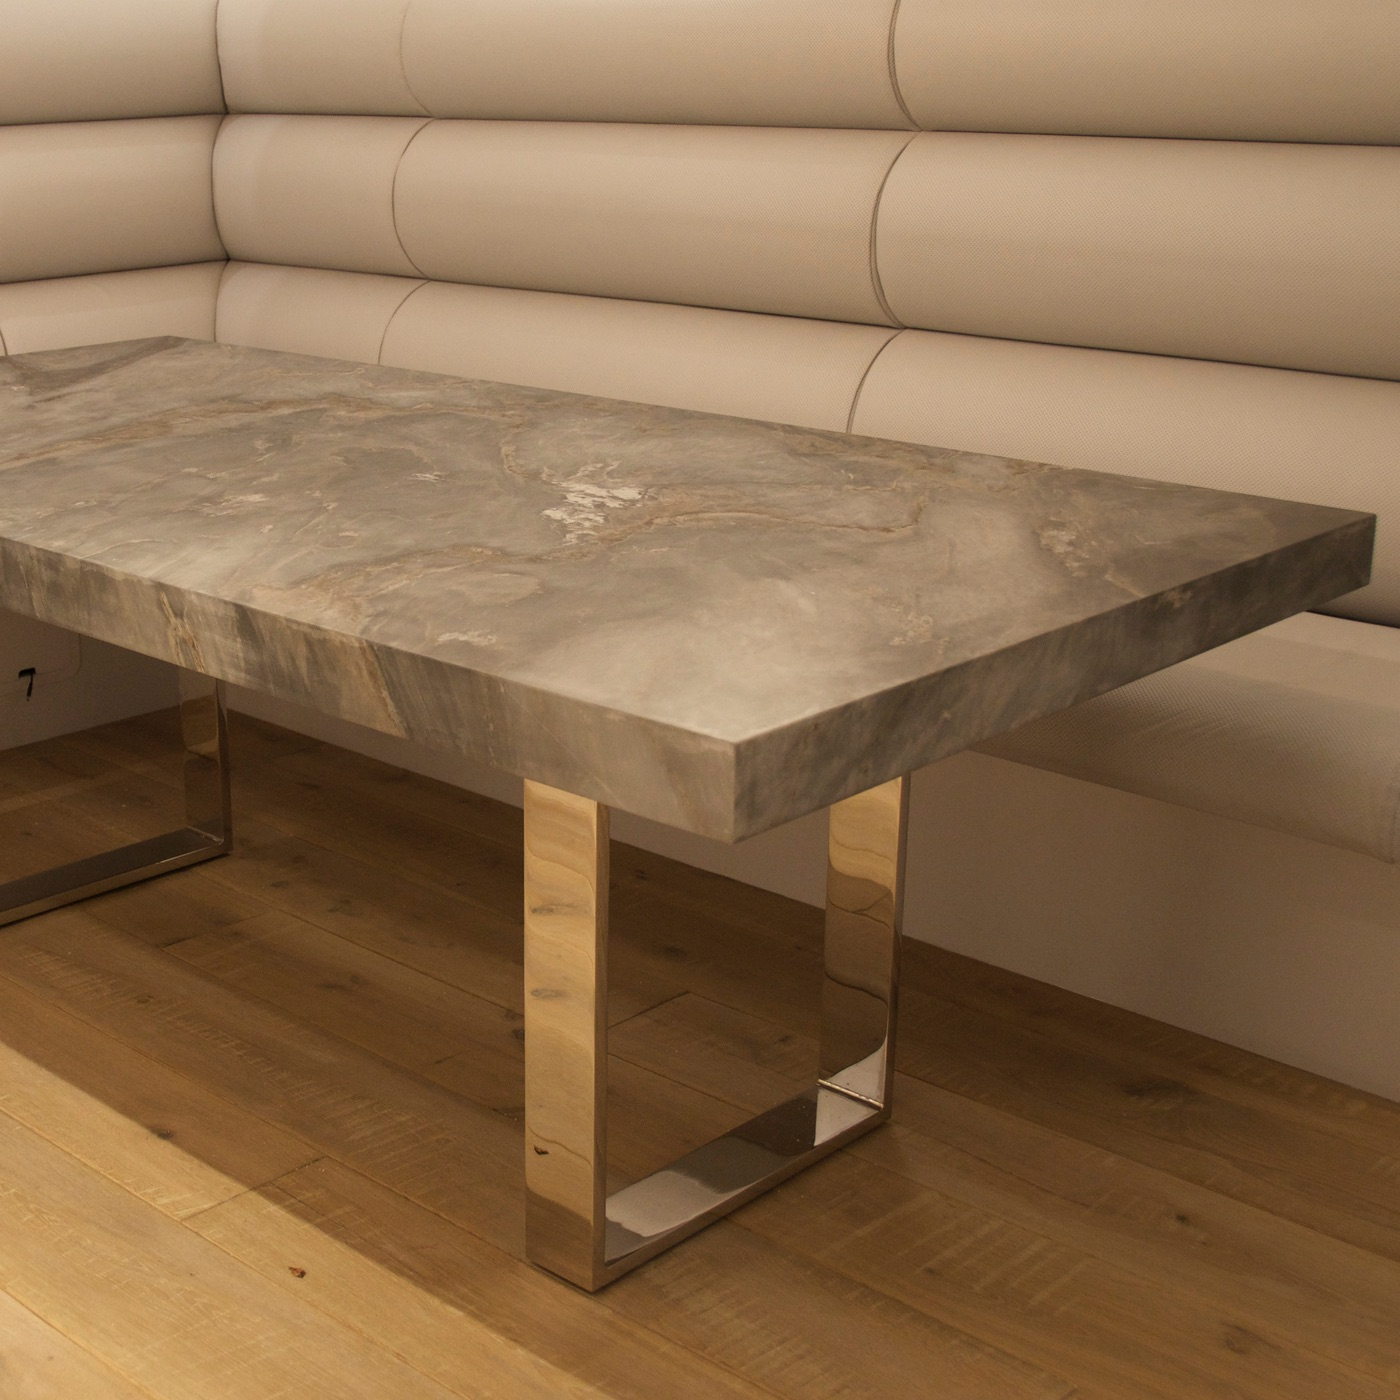 Bespoke dining table design - Bespoke Contemporary Marble And Stainless Steel Dining Table